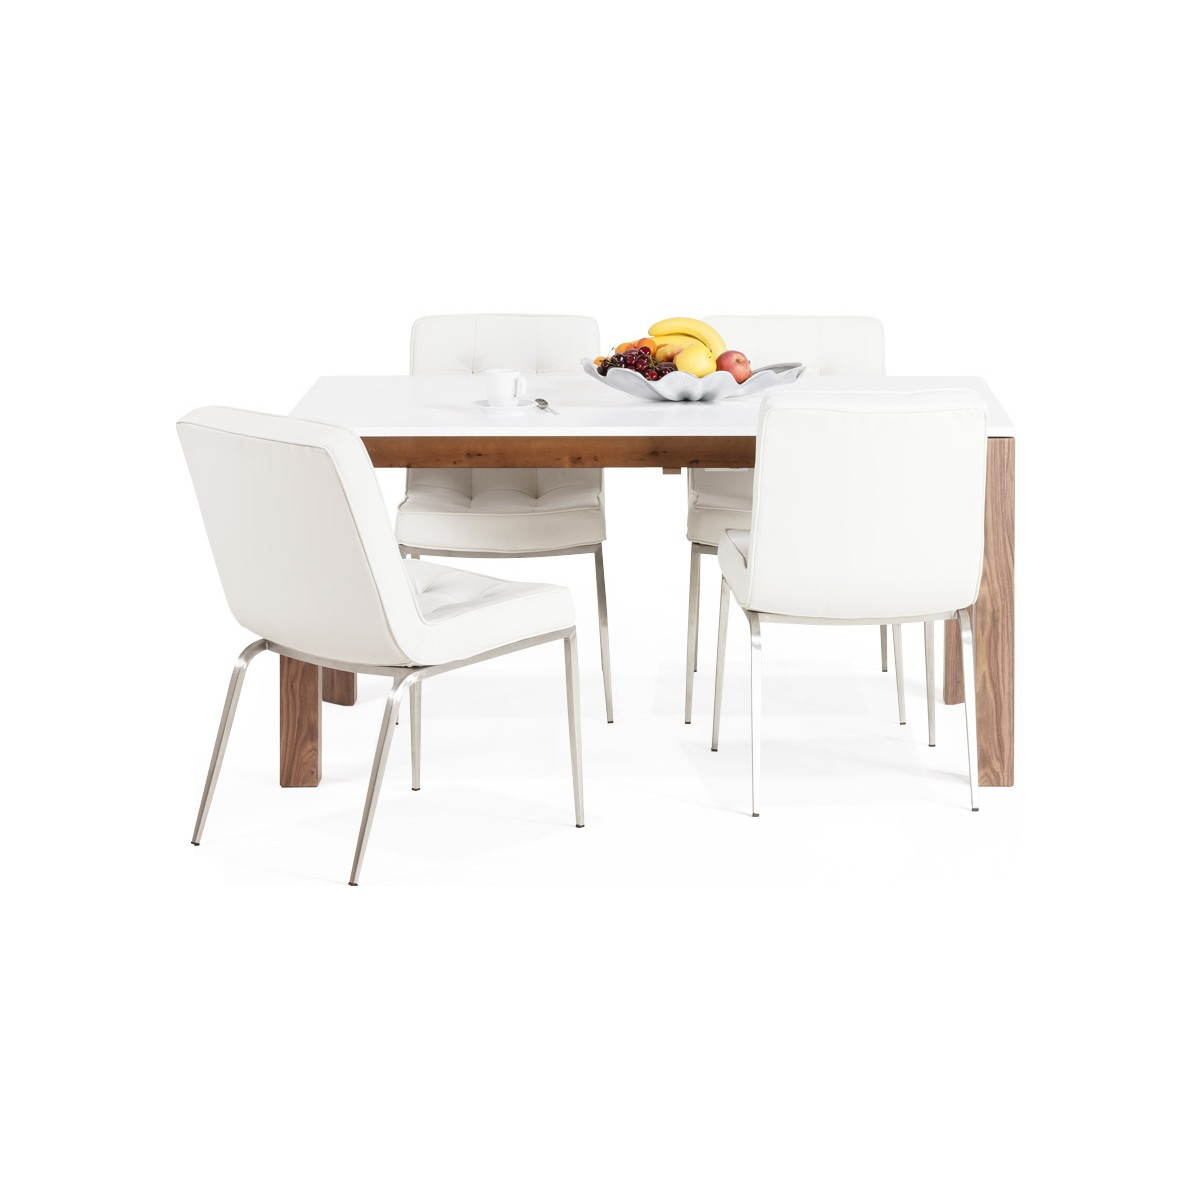 Table bois blanc Table rectangulaire avec rallonge